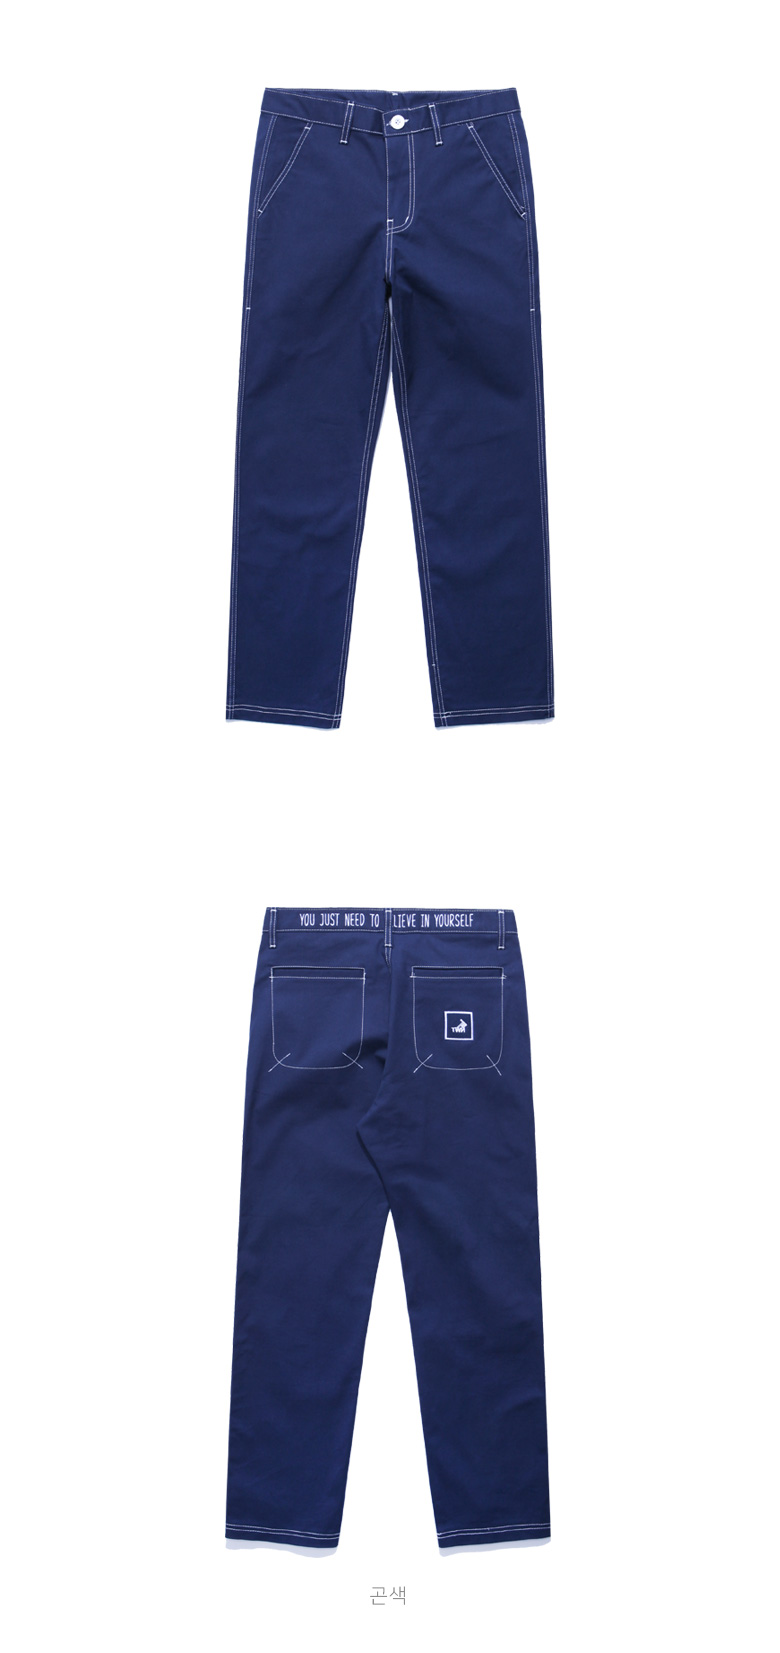 20190121_twn_simplestitch_detail_navy_ym_01.jpg